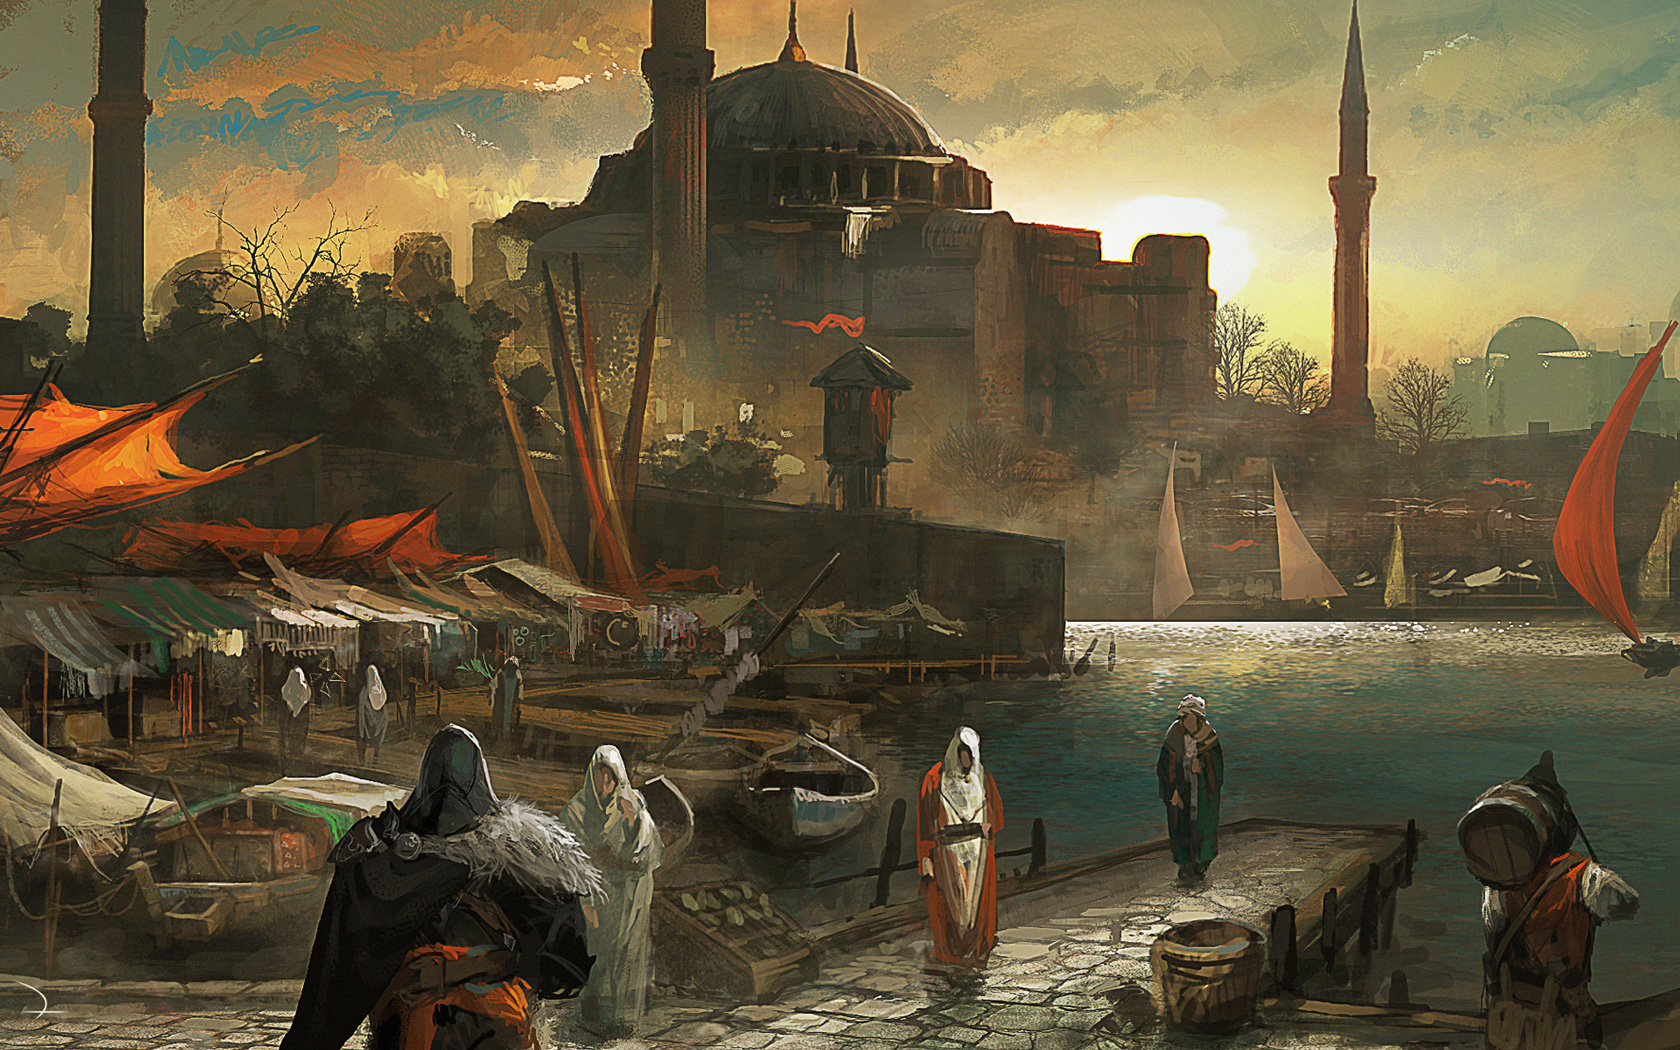 Free Assassin's Creed: Revelations Wallpaper in 1680x1050